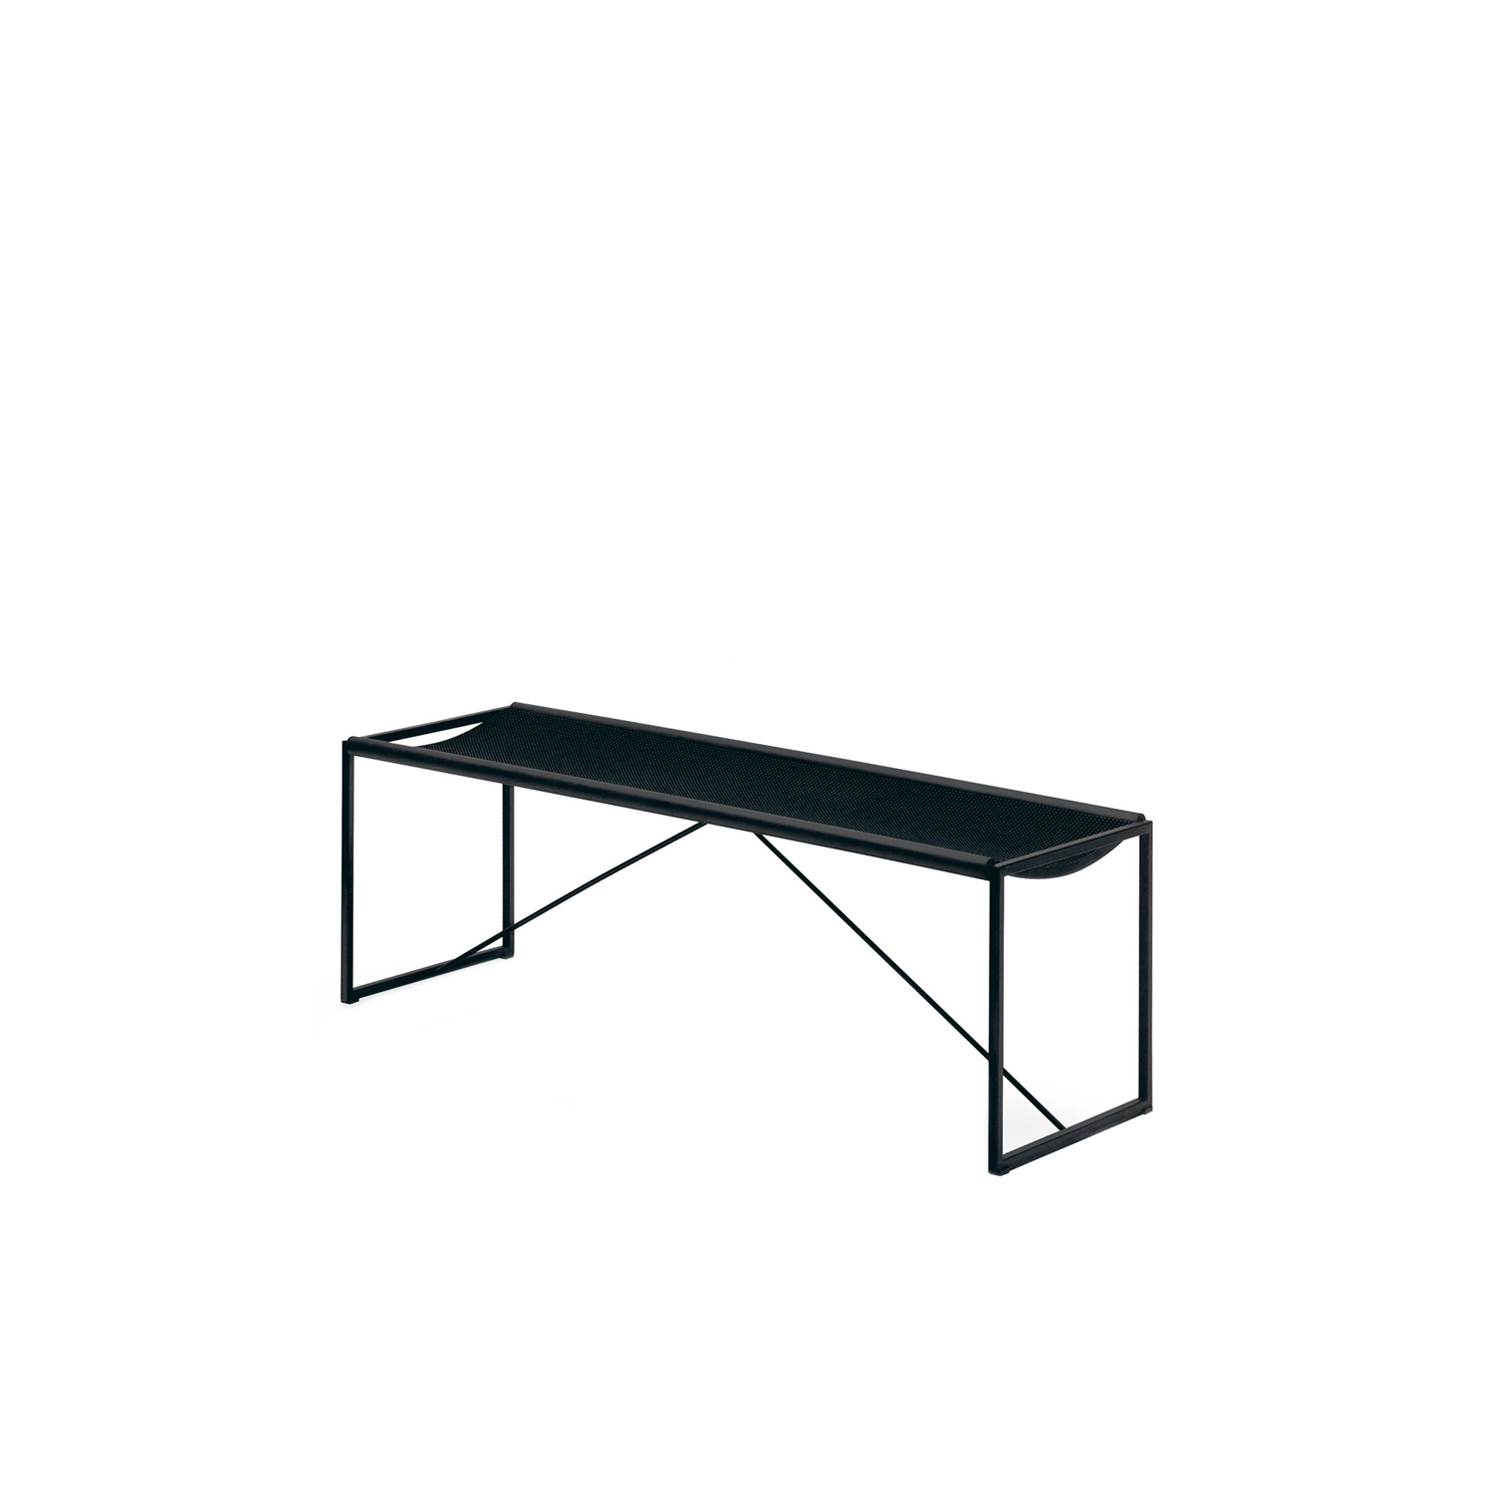 Panca Bench - Designed in 1984 by Maurizio Peregalli the Panca bench is elegant and modern while still having a subtle and sophisticated design. The frame is in all-black tubular-steel which is embossed black. The seat is made with  thousand points rubber with black extruded rubber. It's timeless design means that it can be featured almost anywhere from corridors and entryways to living rooms and dining rooms.  